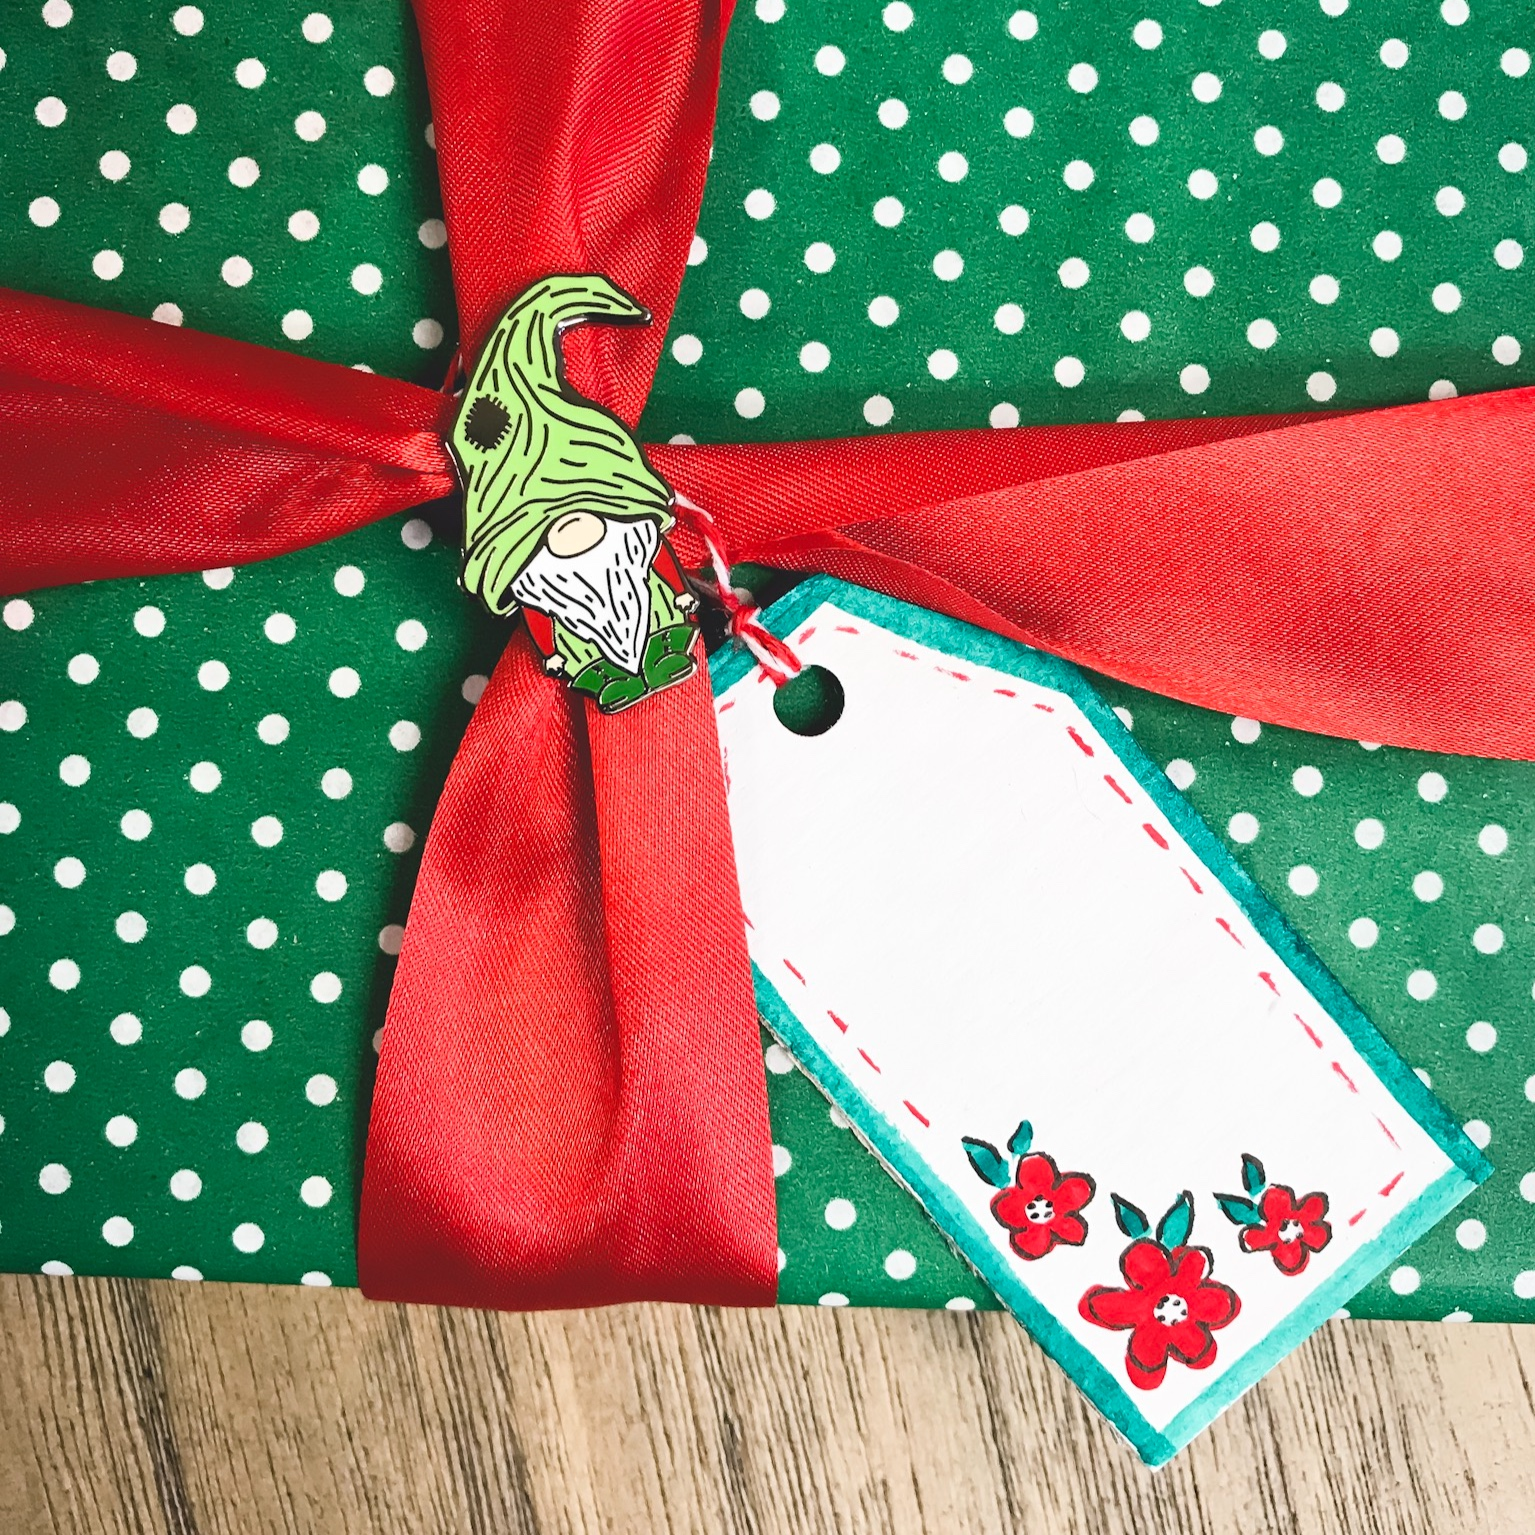 Once your tags are dry, add the ribbon and then tie the to a wrapped gift.   You can find the gnome enamel pin I've used to pin the ribbon in my Etsy shop.